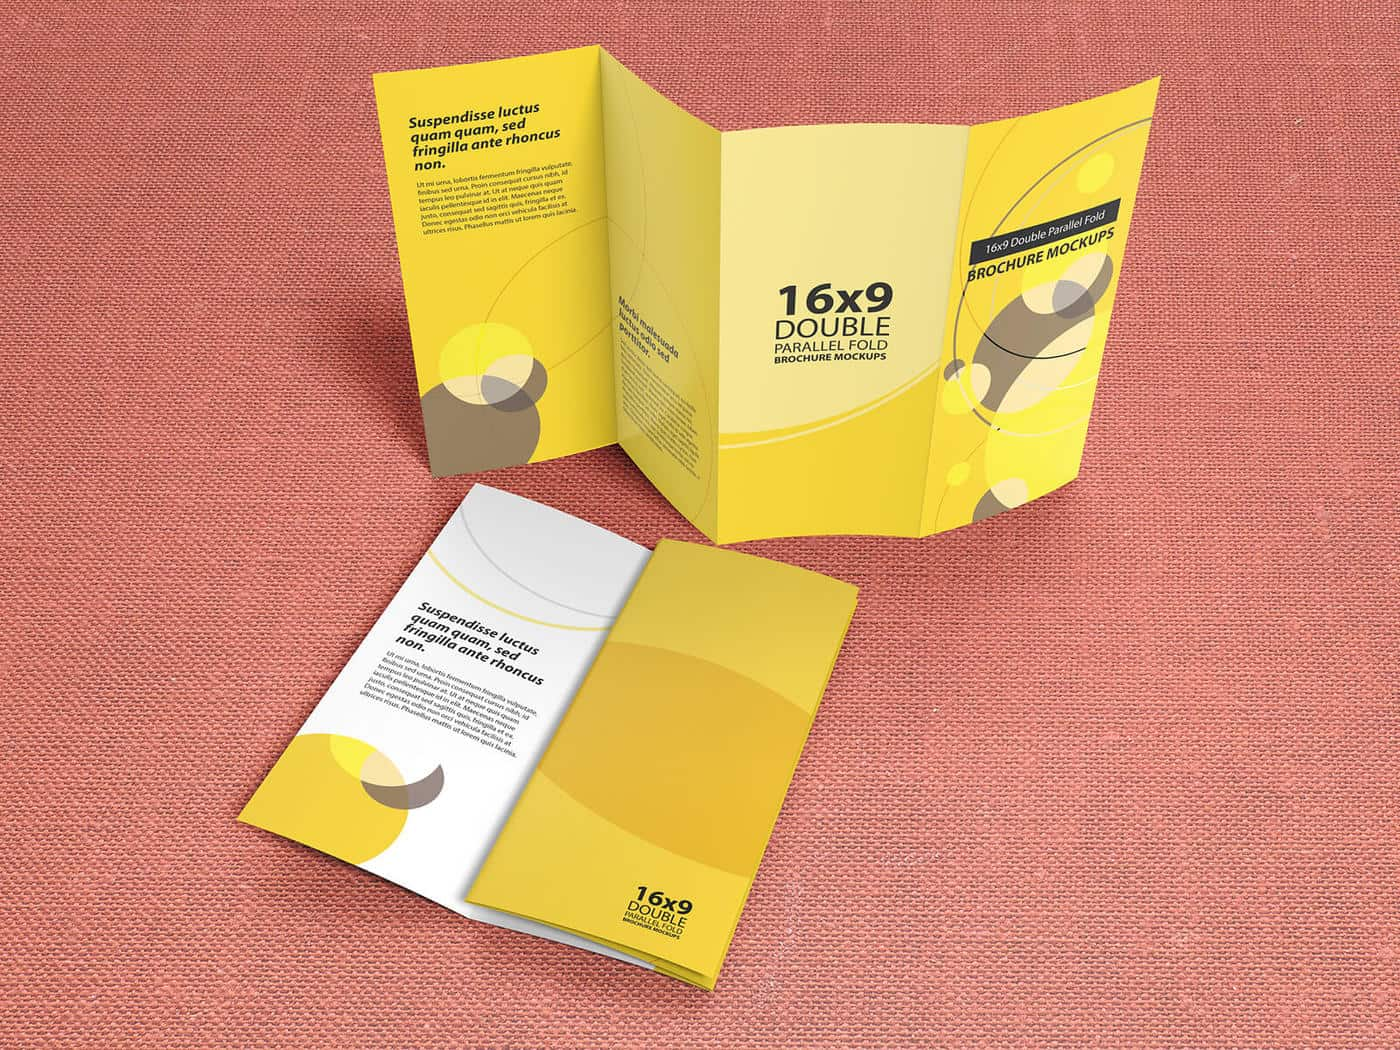 16×9 Double Parallel Fold Brochure Mockups